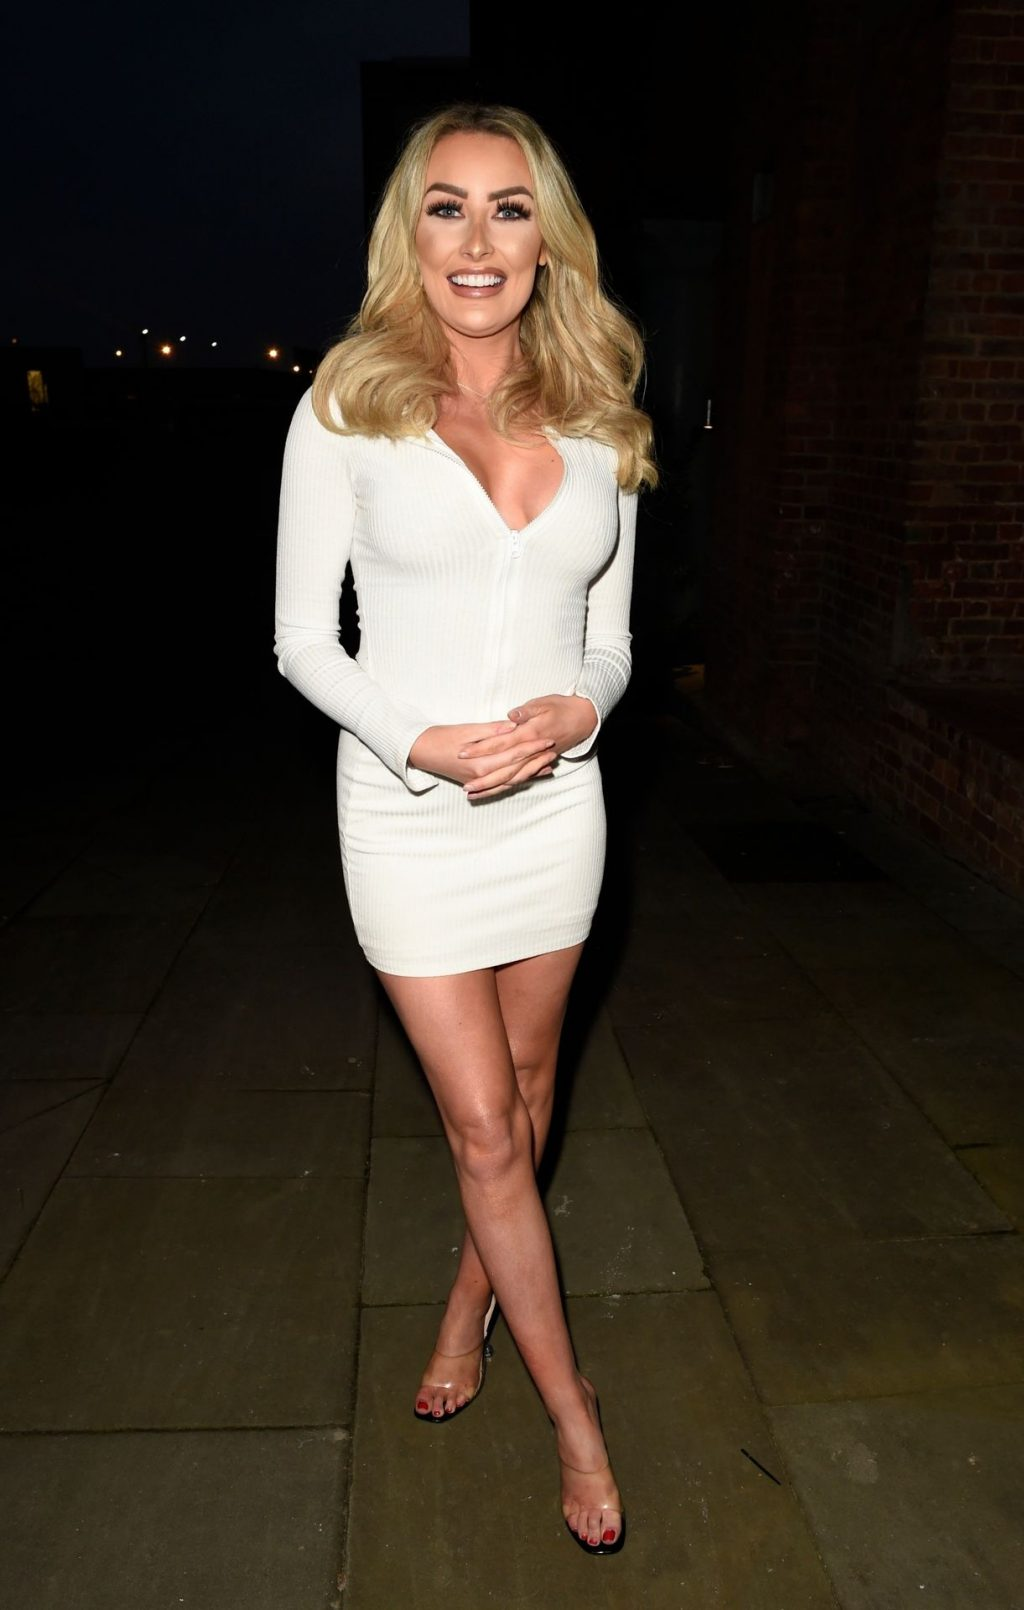 Leggy Chloe Crowhurst is Pictured in Manchester (37 Photos)